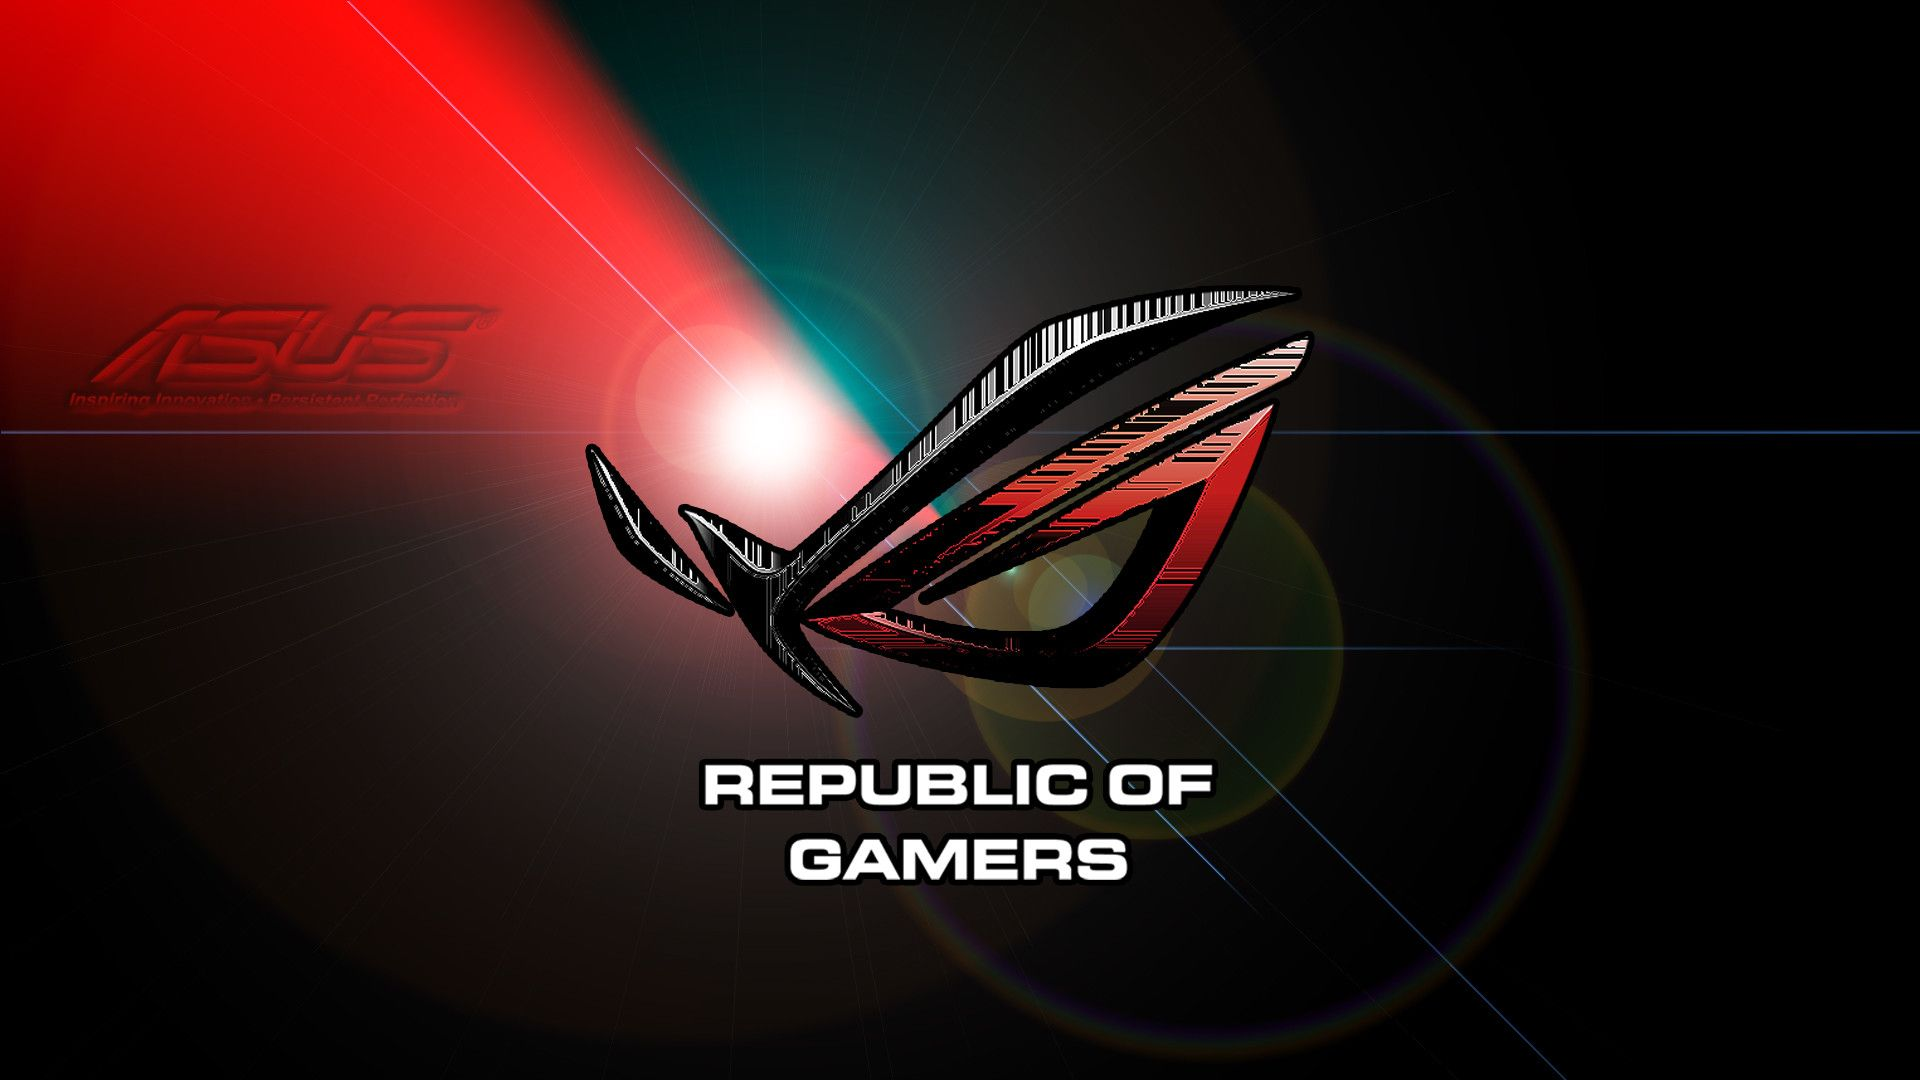 Asus Rog Wallpaper Wallpapers 2020